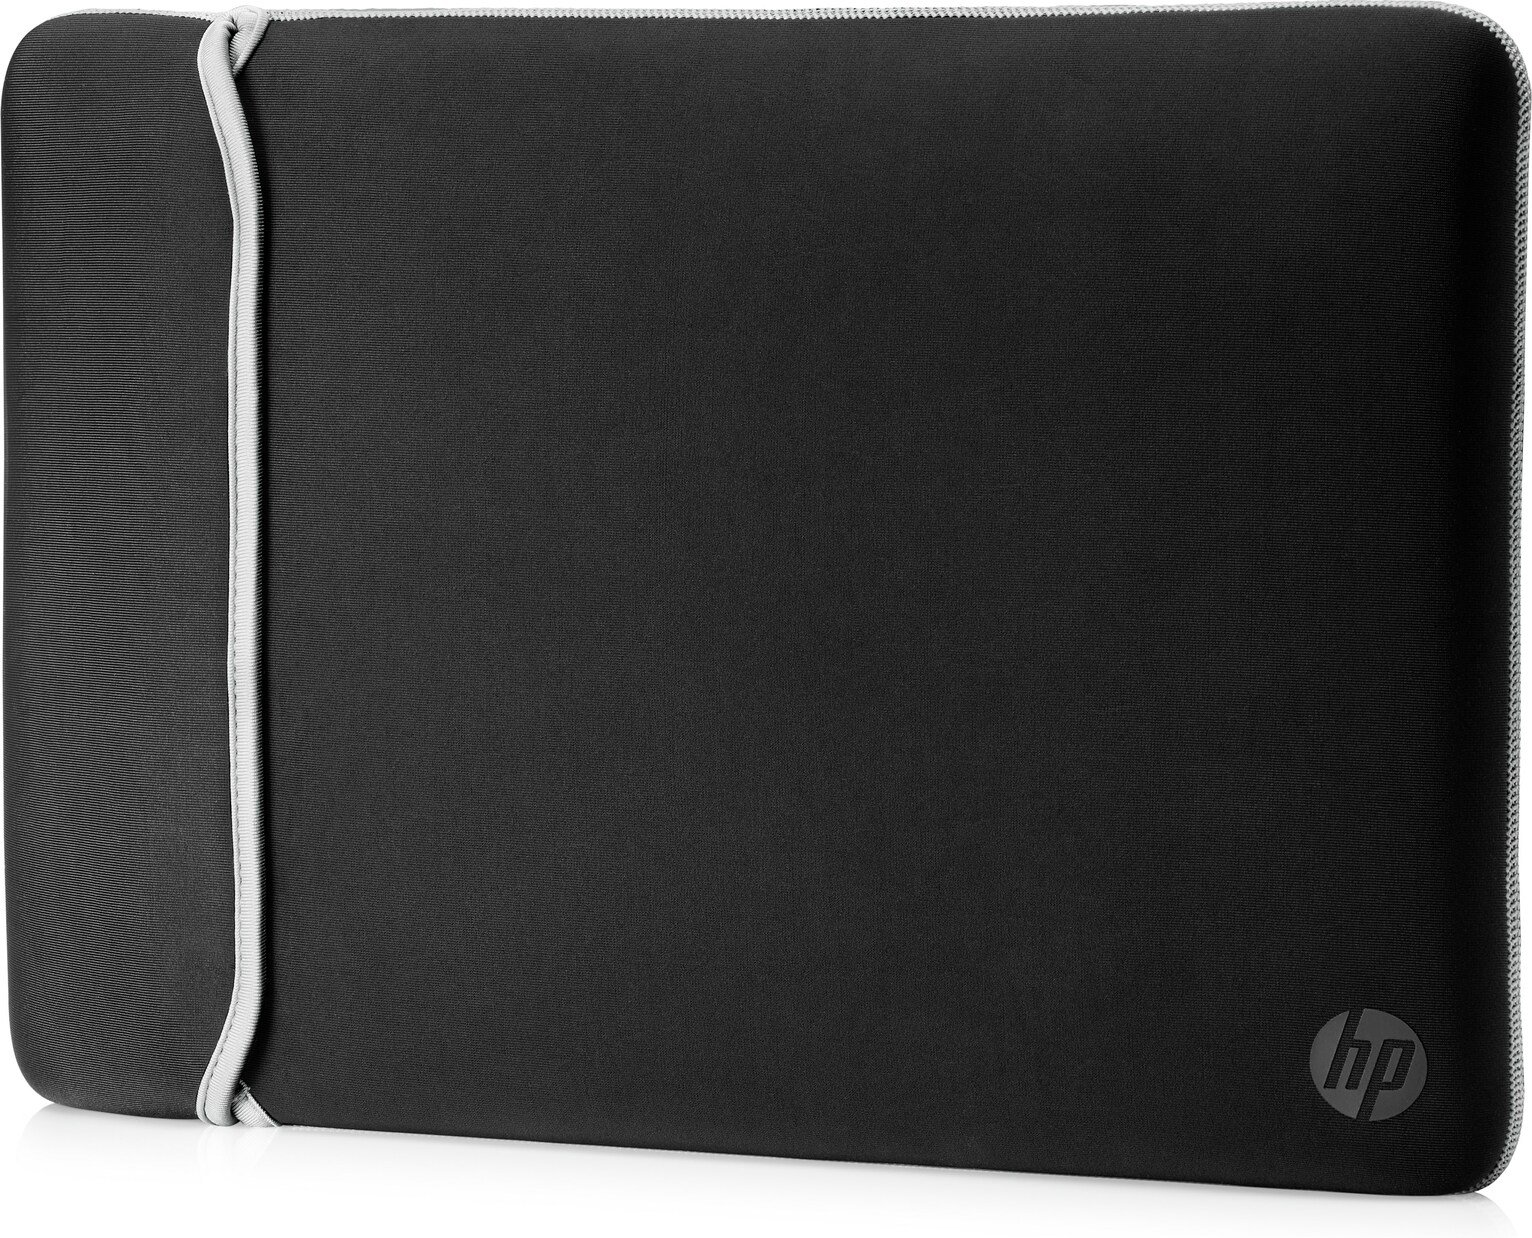 HP 14 Inch Reversible Laptop Sleeve - Silver & Black from HP